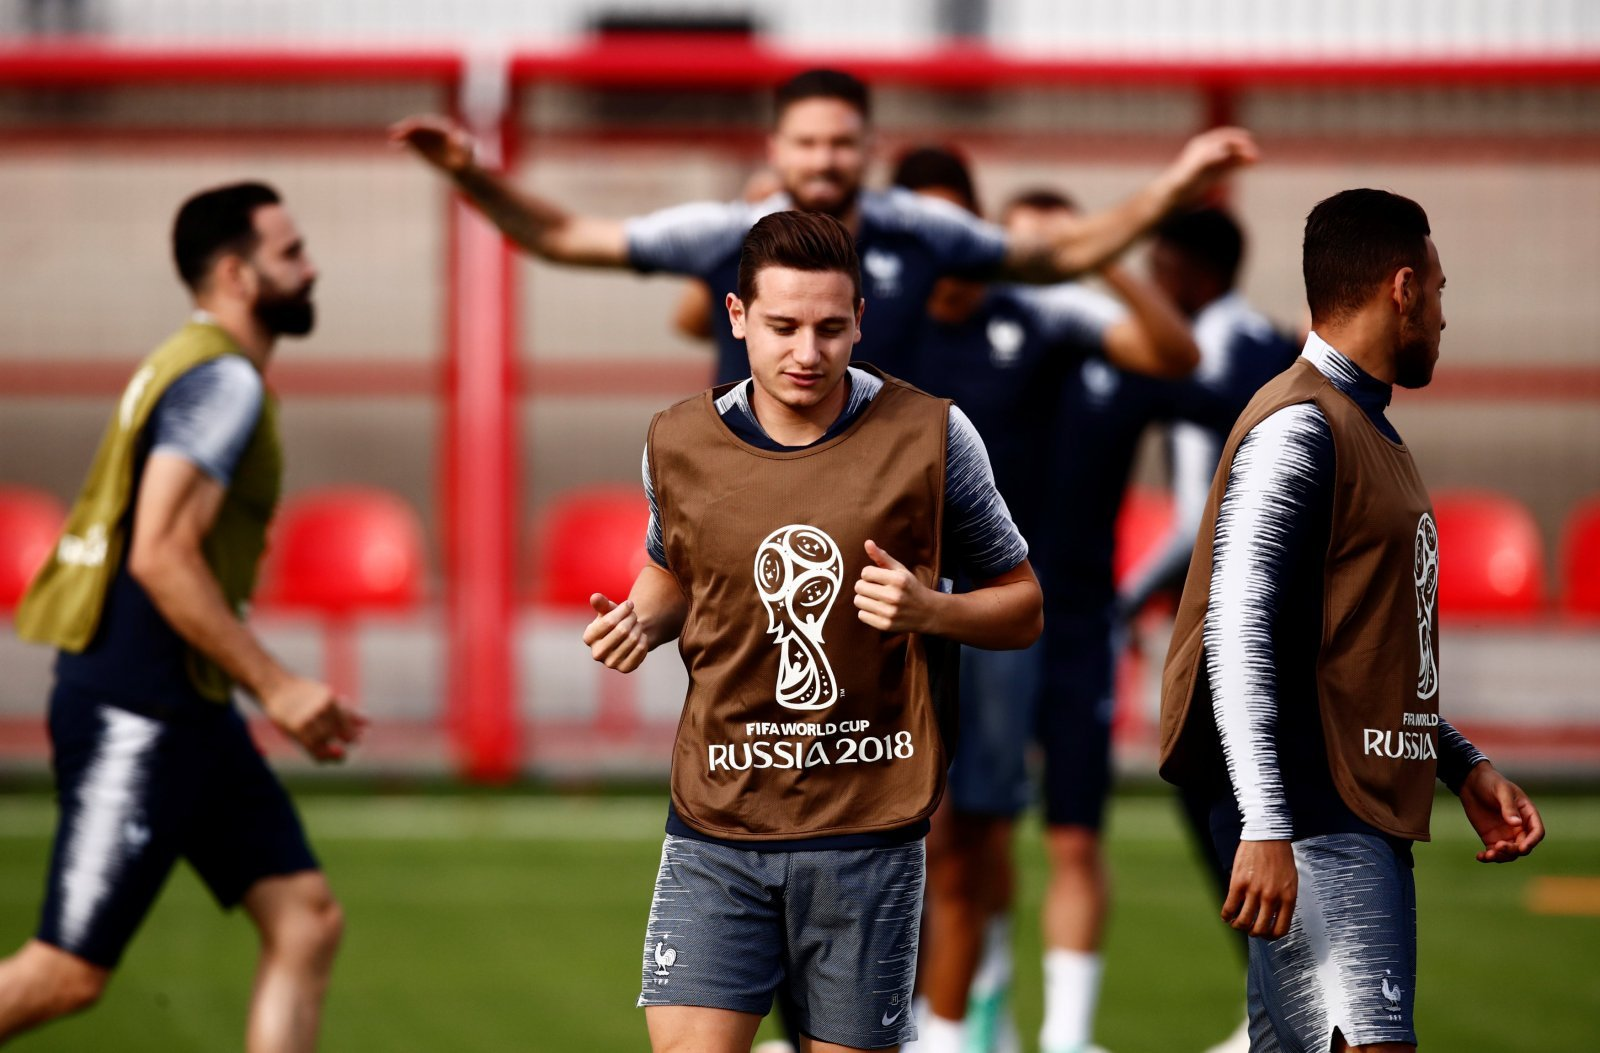 Thauvin would add so much to Emery's Arsenal if a deal could be possible